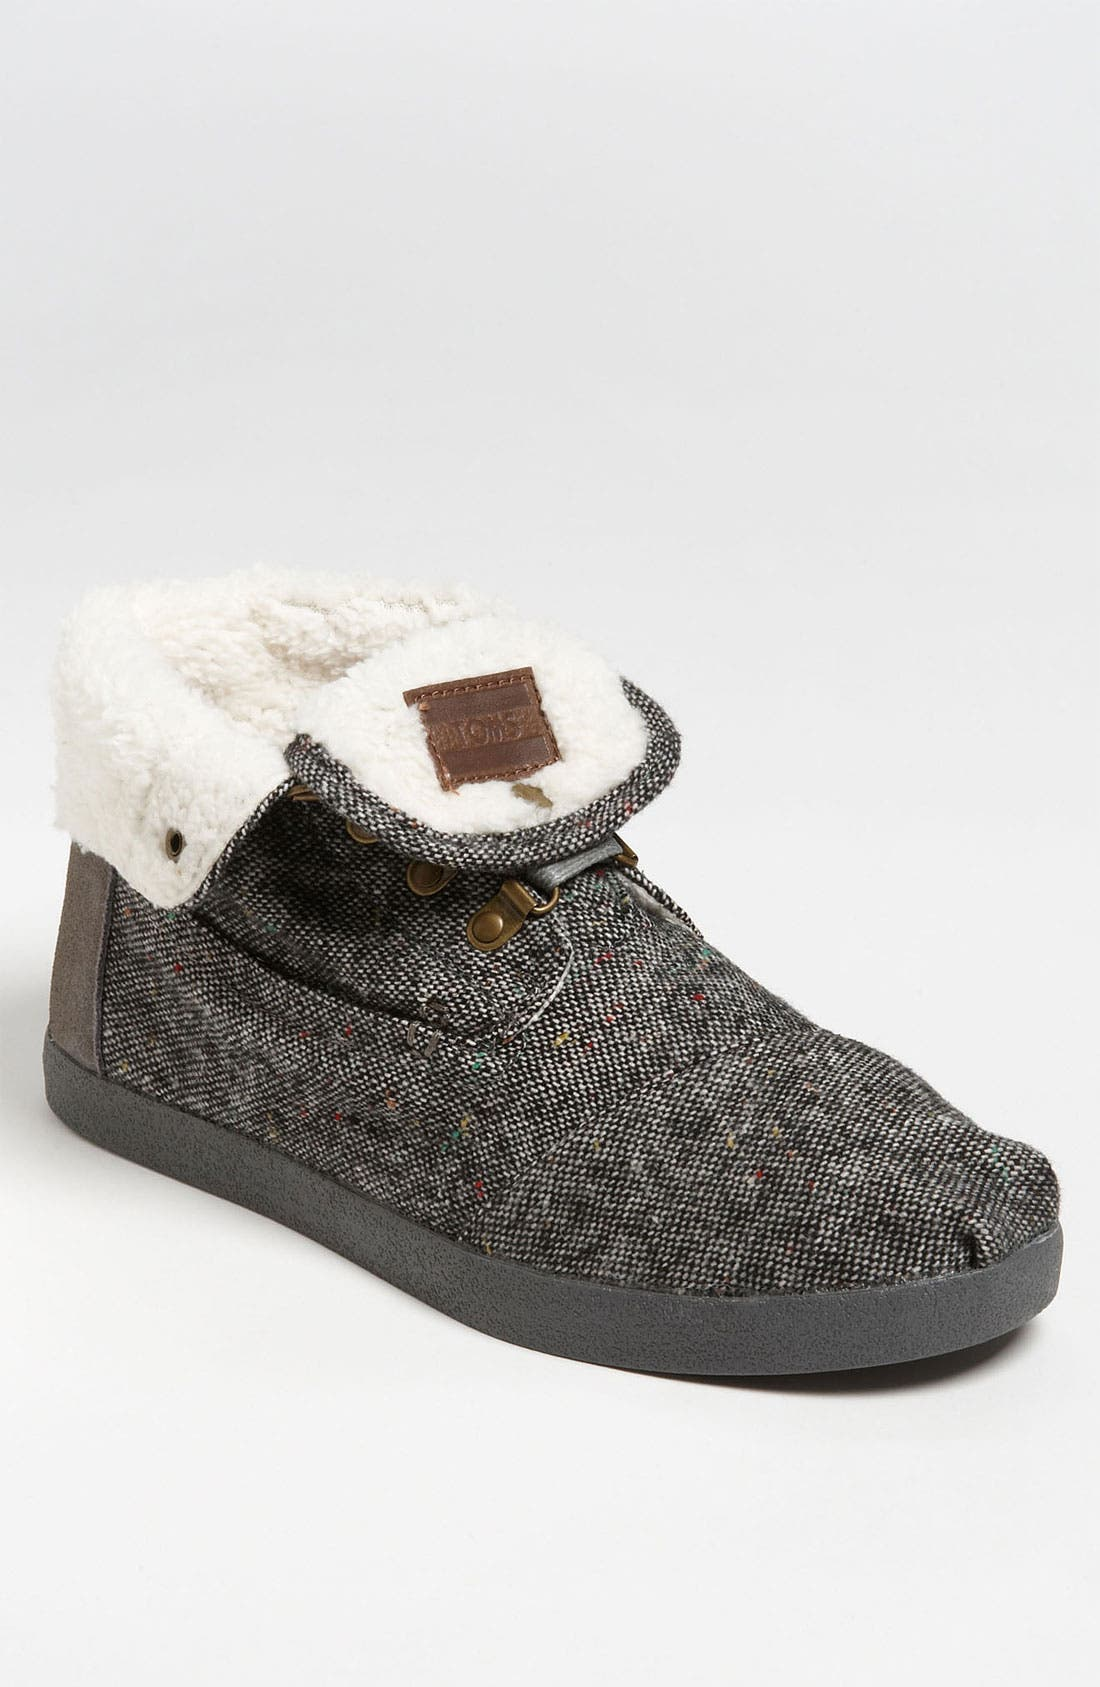 Main Image - TOMS 'Botas Highlands - Holden' Fleece Boot (Men) (Nordstrom Exclusive)